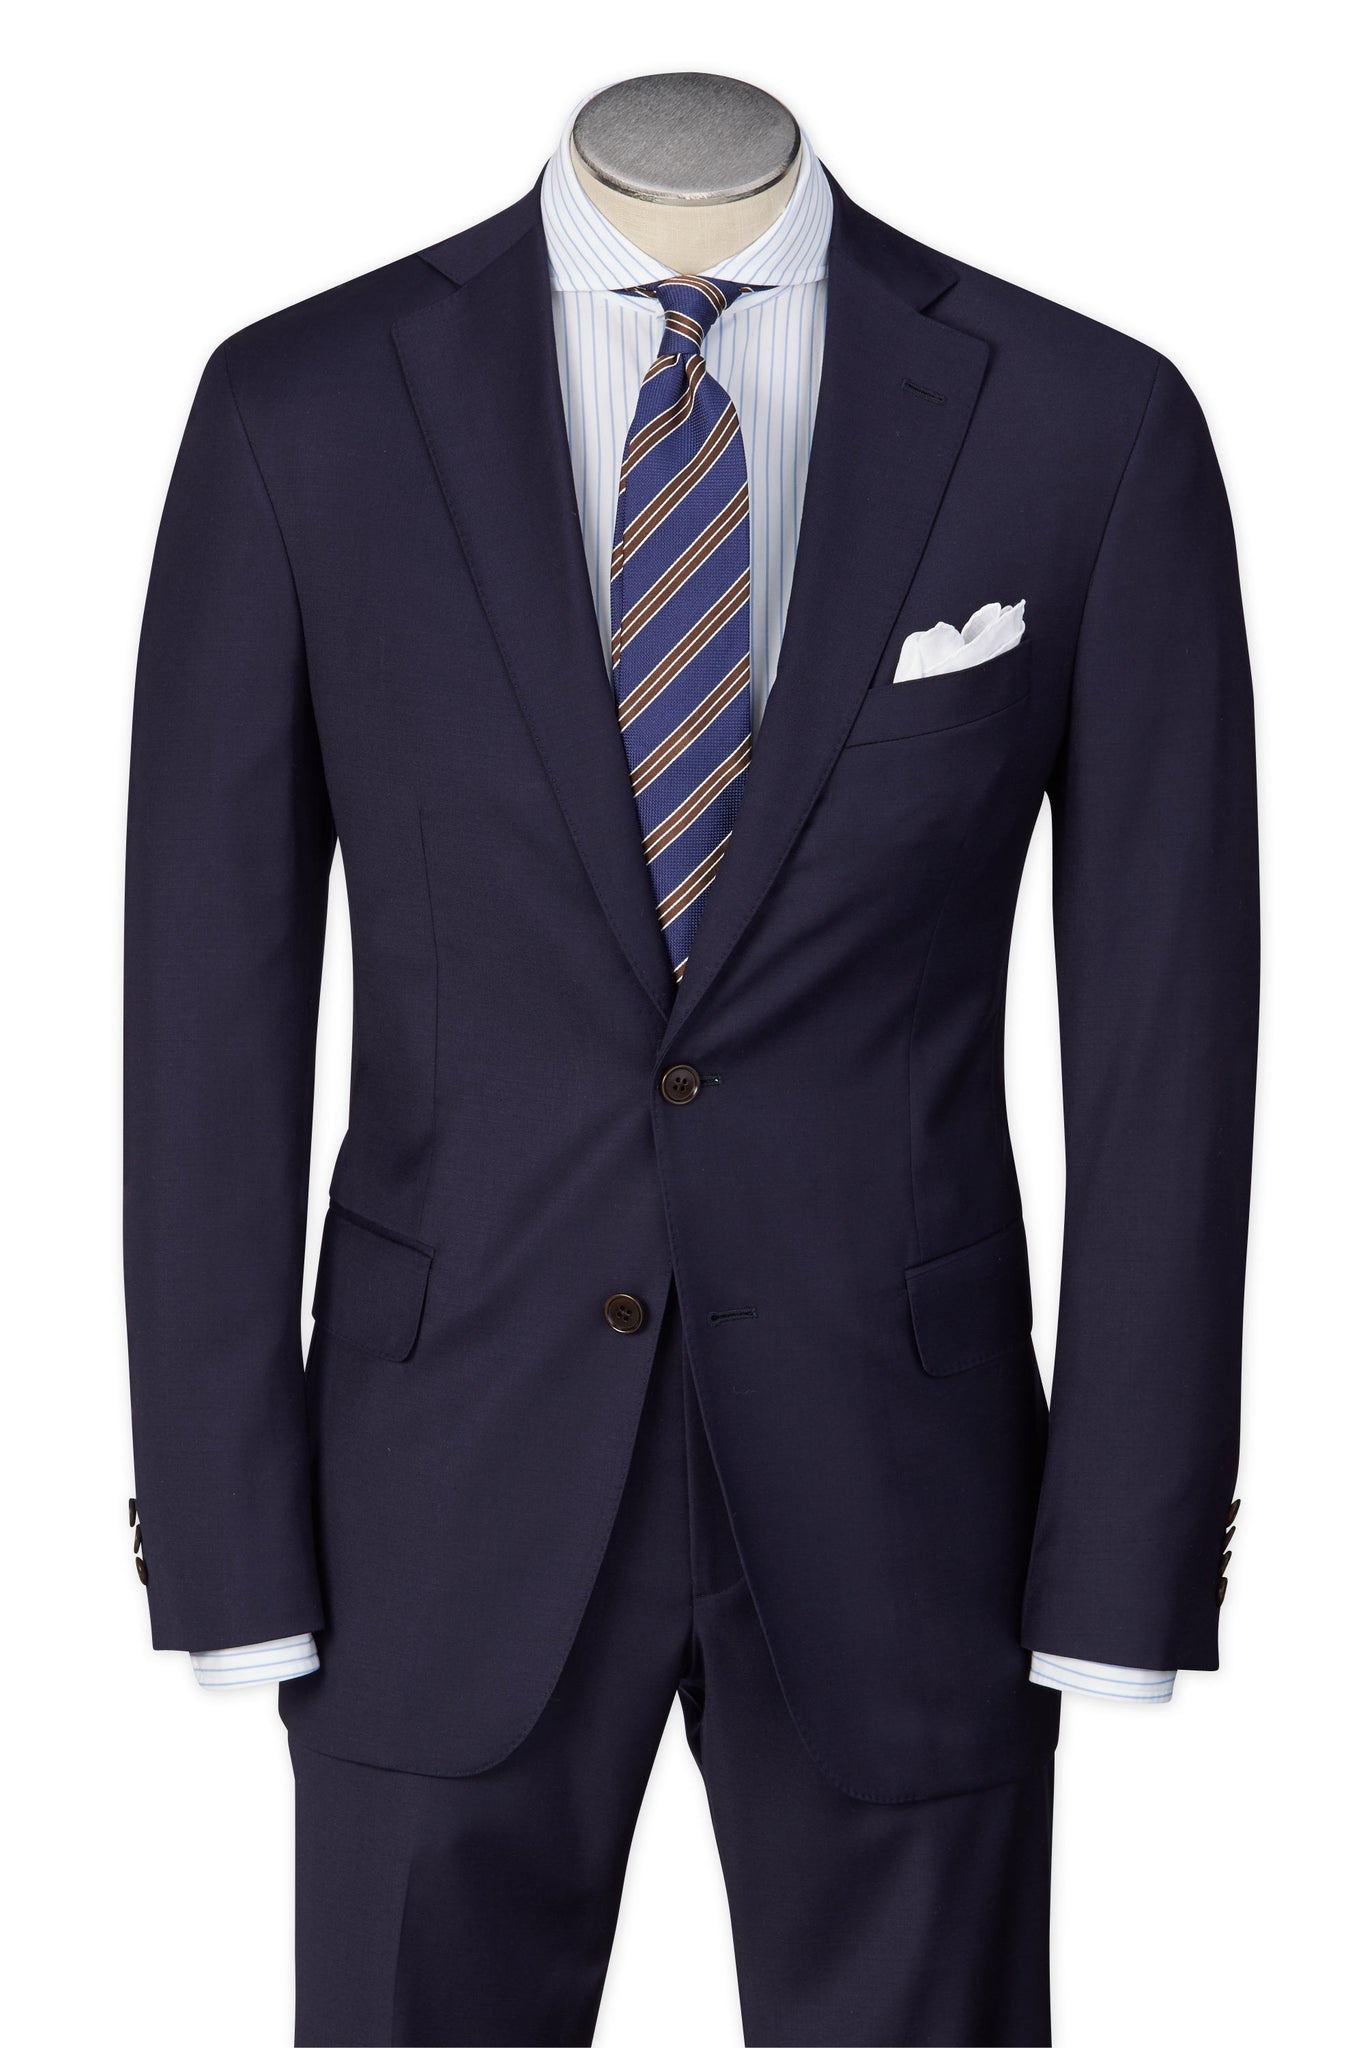 Modern Fit Navy H-Tech Performance Wool Suit -  Hardwick.com